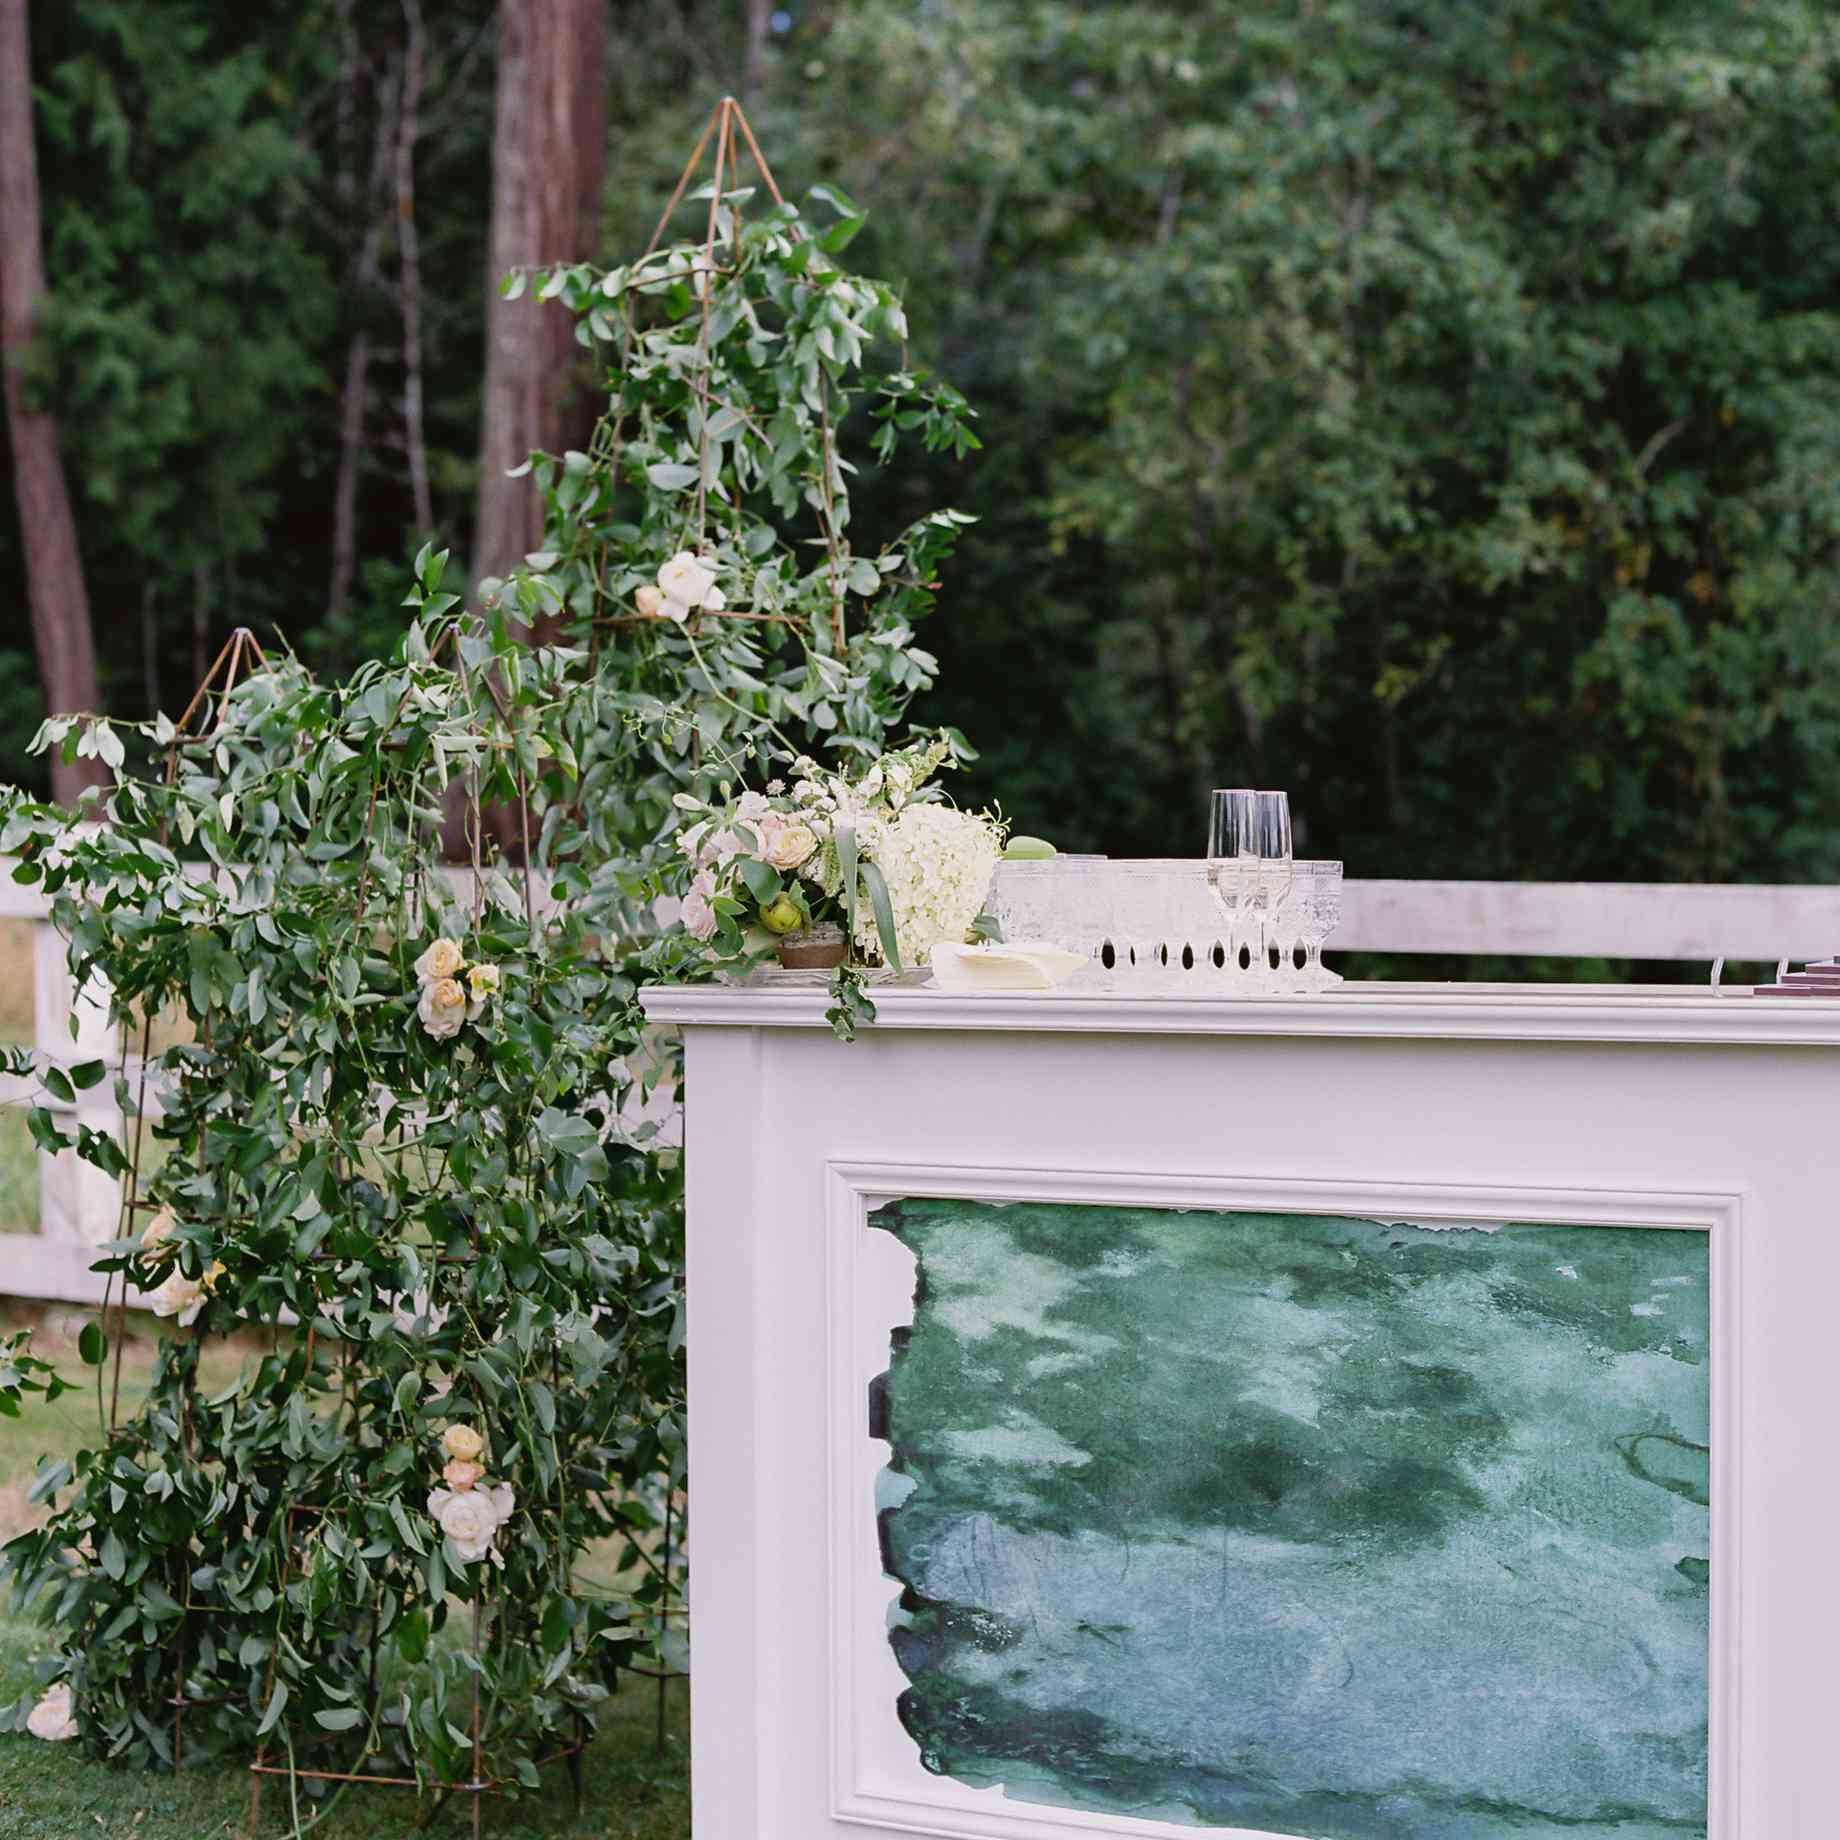 bar at wedding reception next to large floral decoration